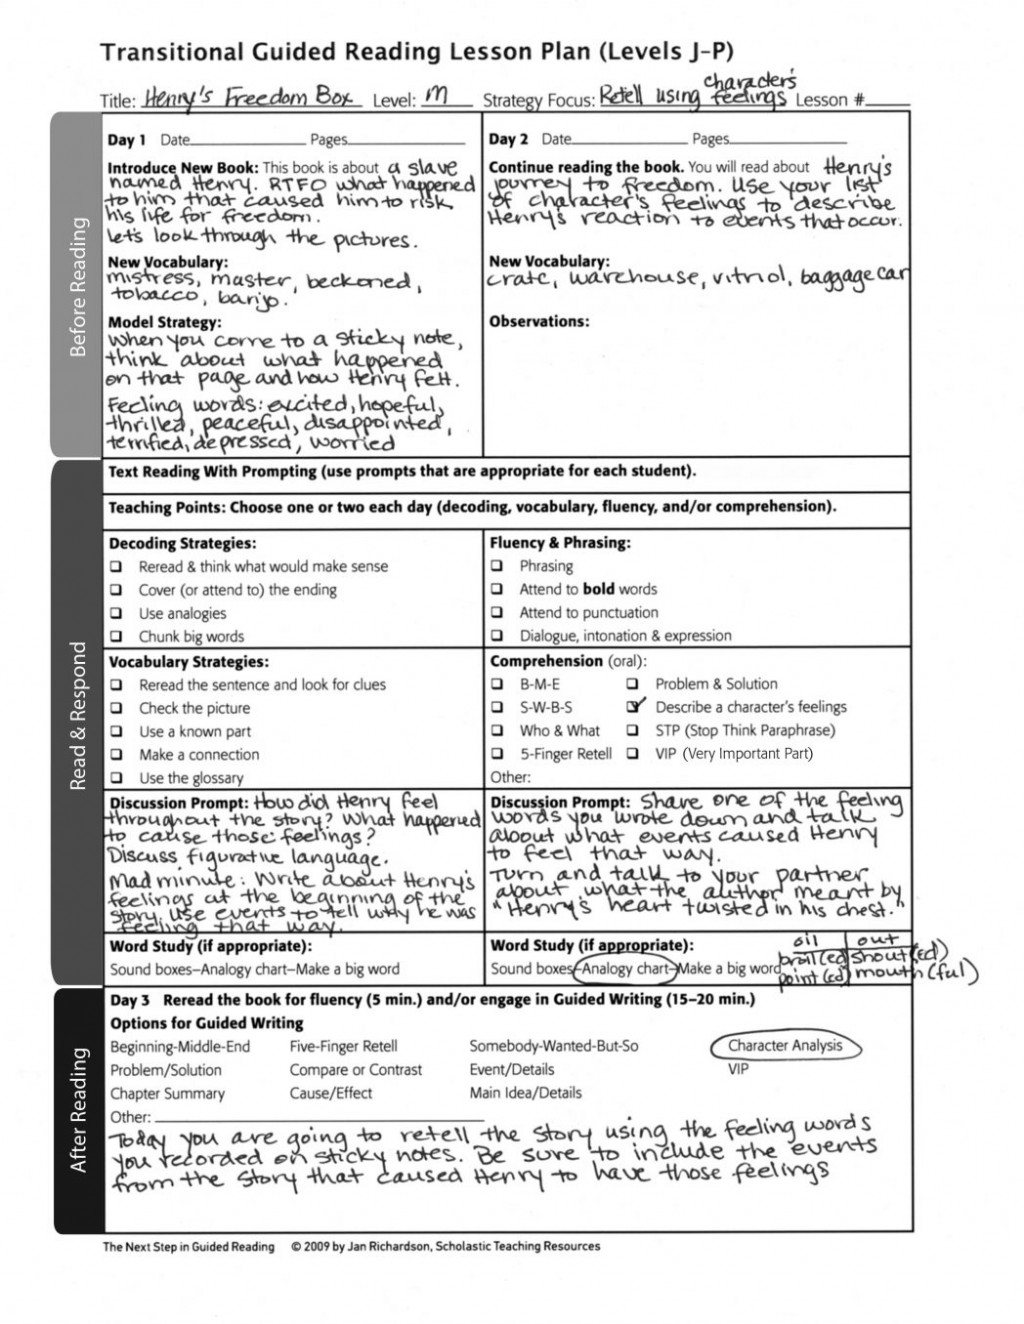 012 Define Happiness Essay Clever Titles How To Write Good Definition Outline Fi4 Handout Guided Reading Videos Transitional Lesson Plan M Comp 1048x1356 Imposing Title Large